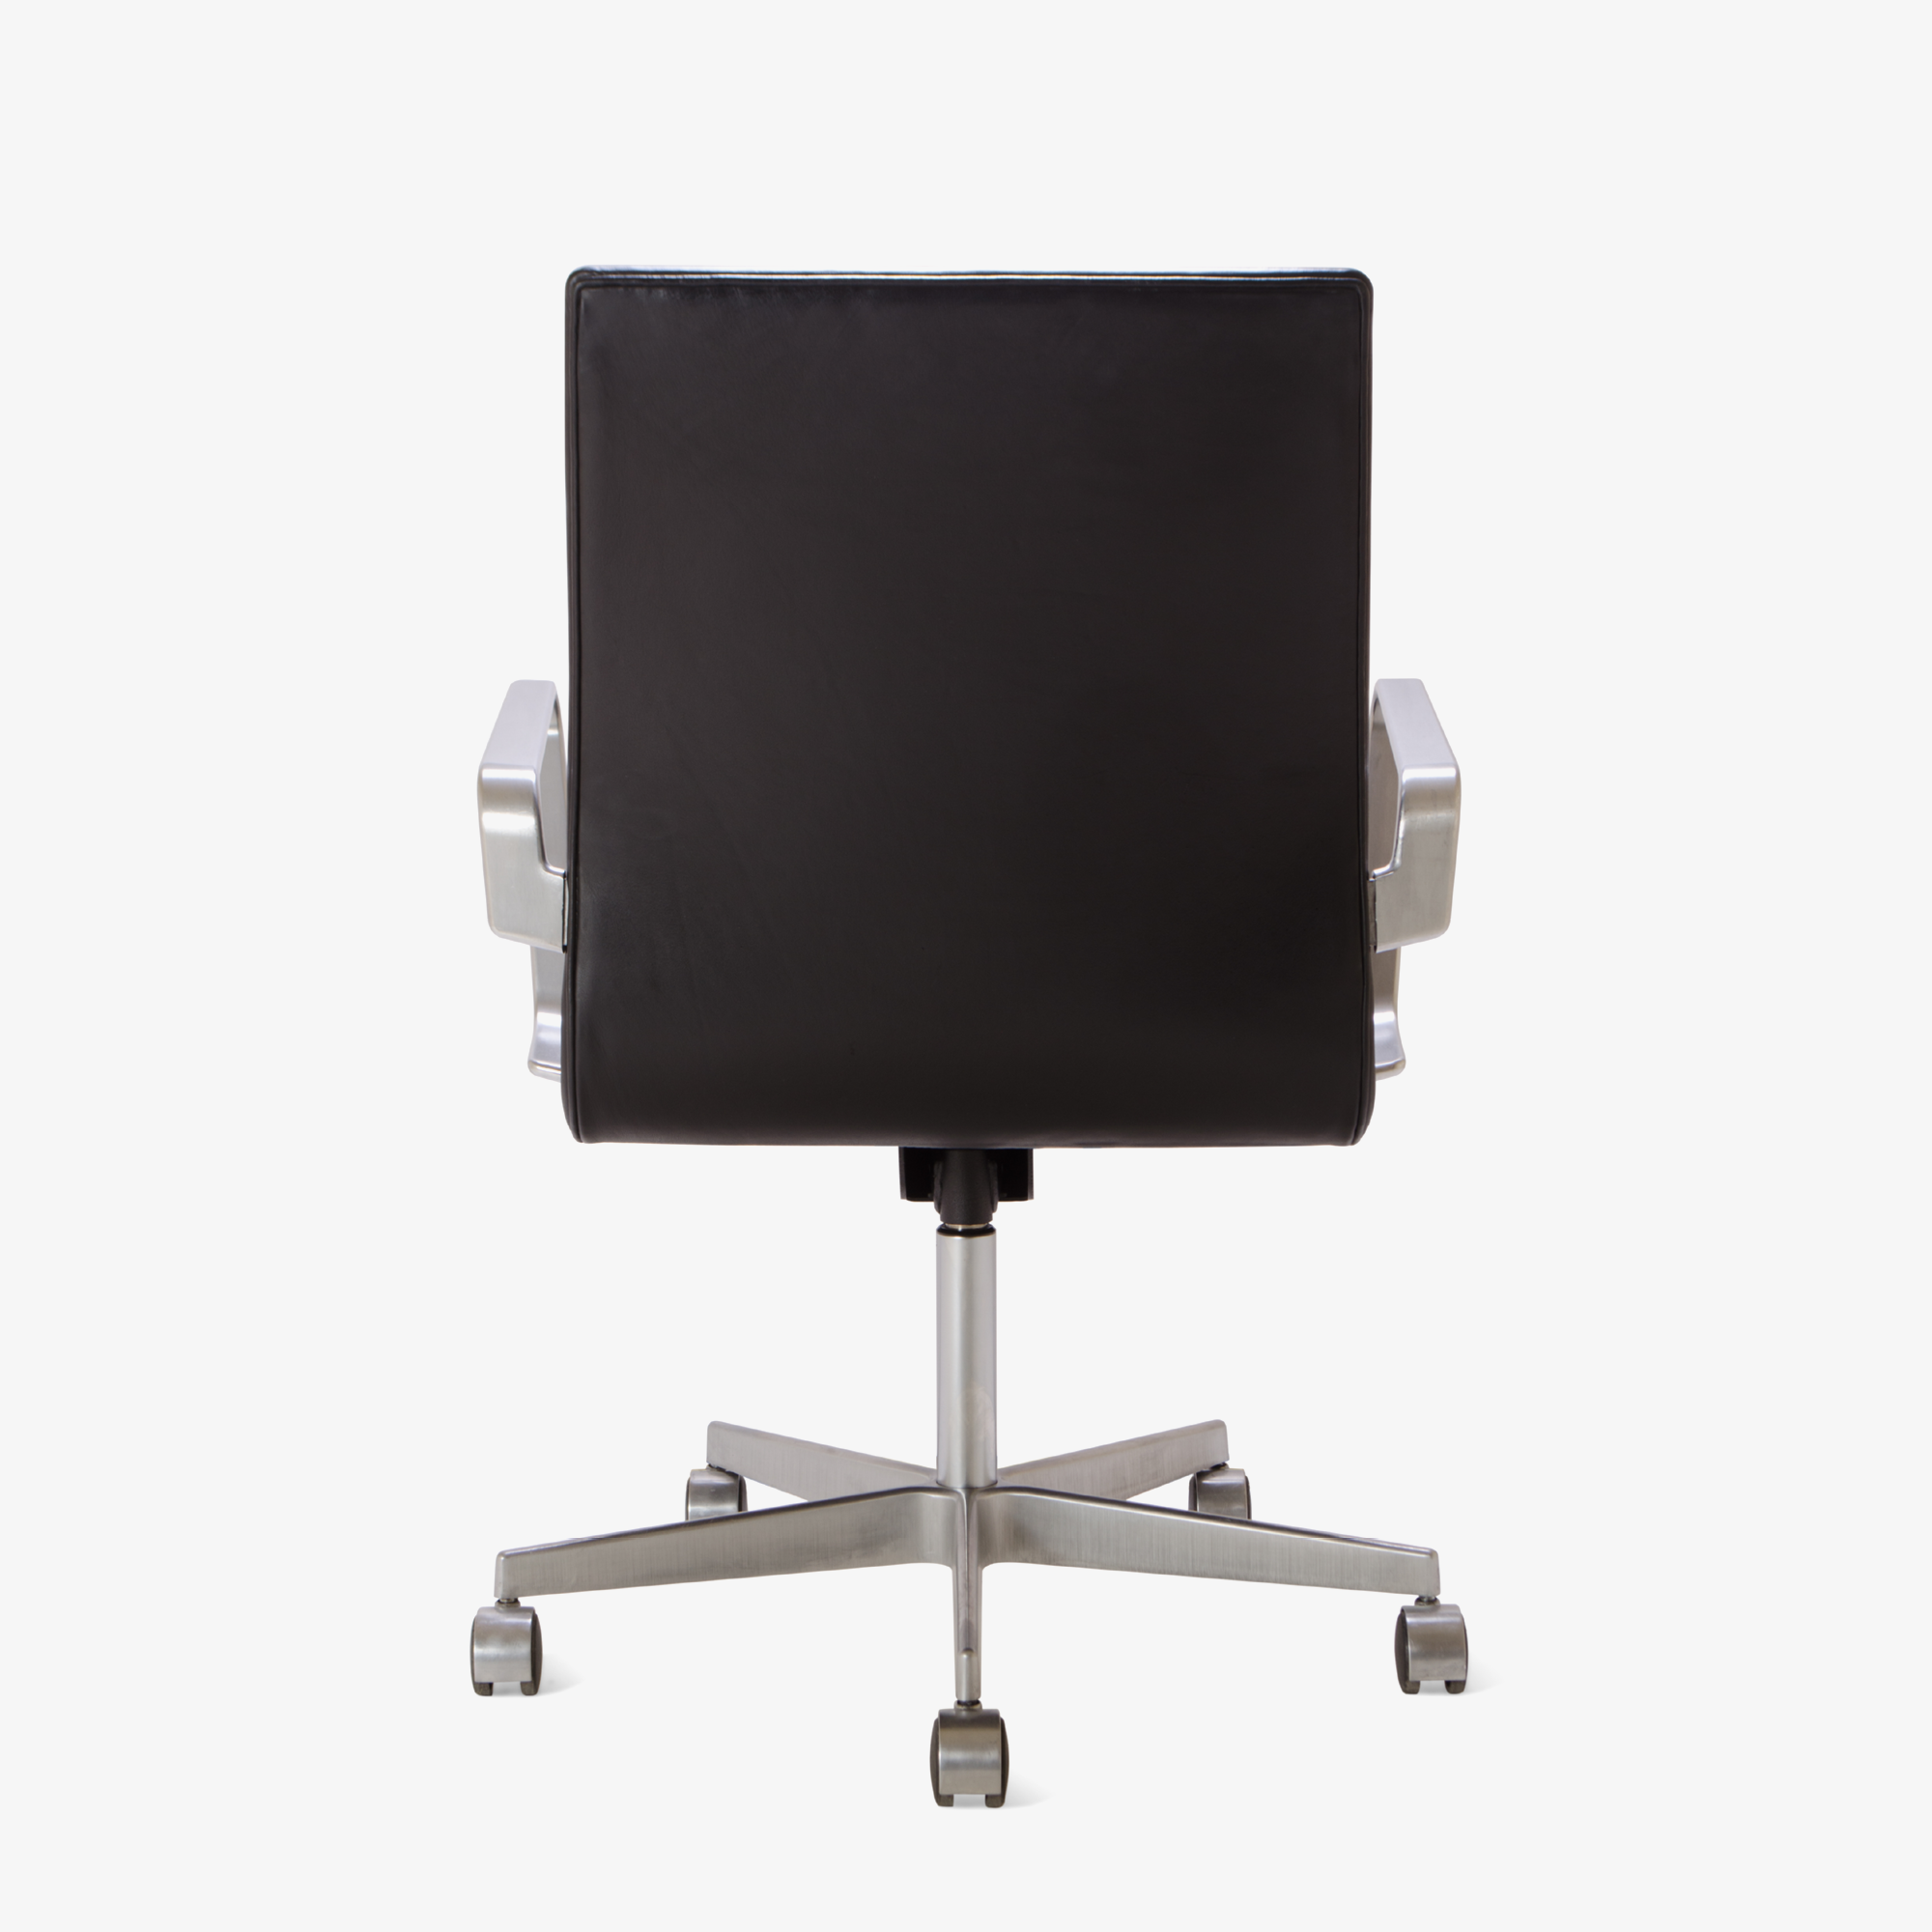 Oxford Chair by Arne Jacobsen for Fritz Hansen6.png